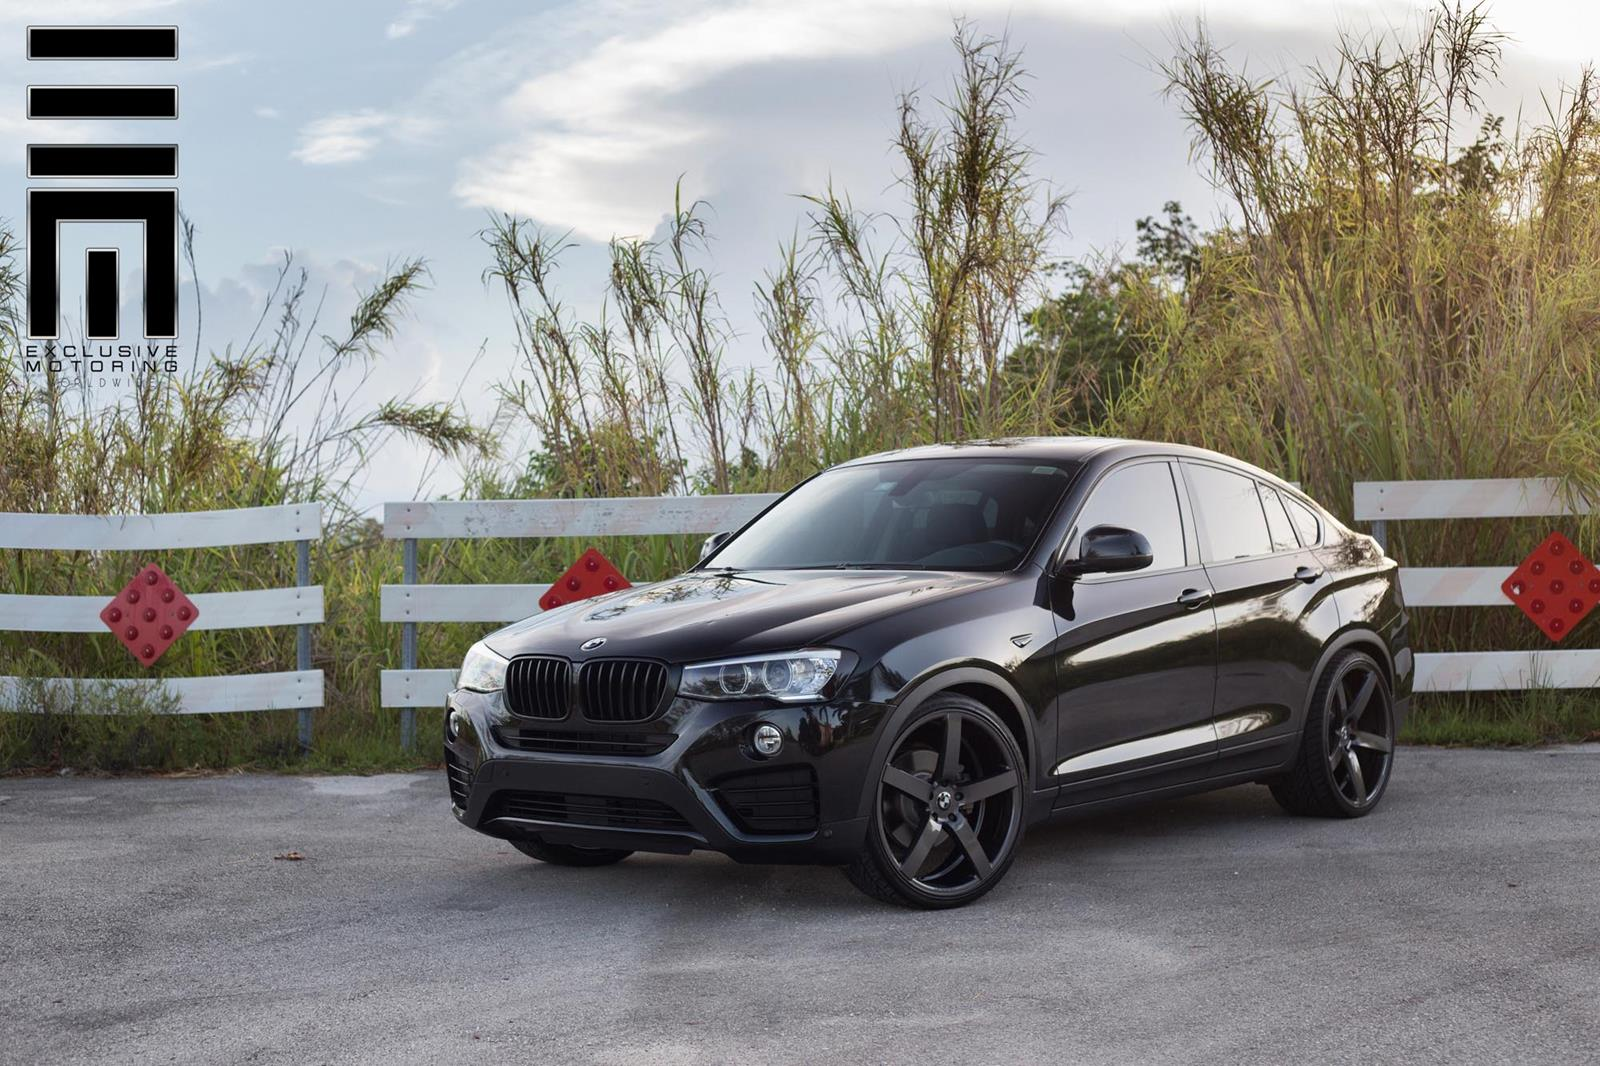 Bmw X4 Custom Wheels Vossen Cv3 22x9 0 Et Tire Size